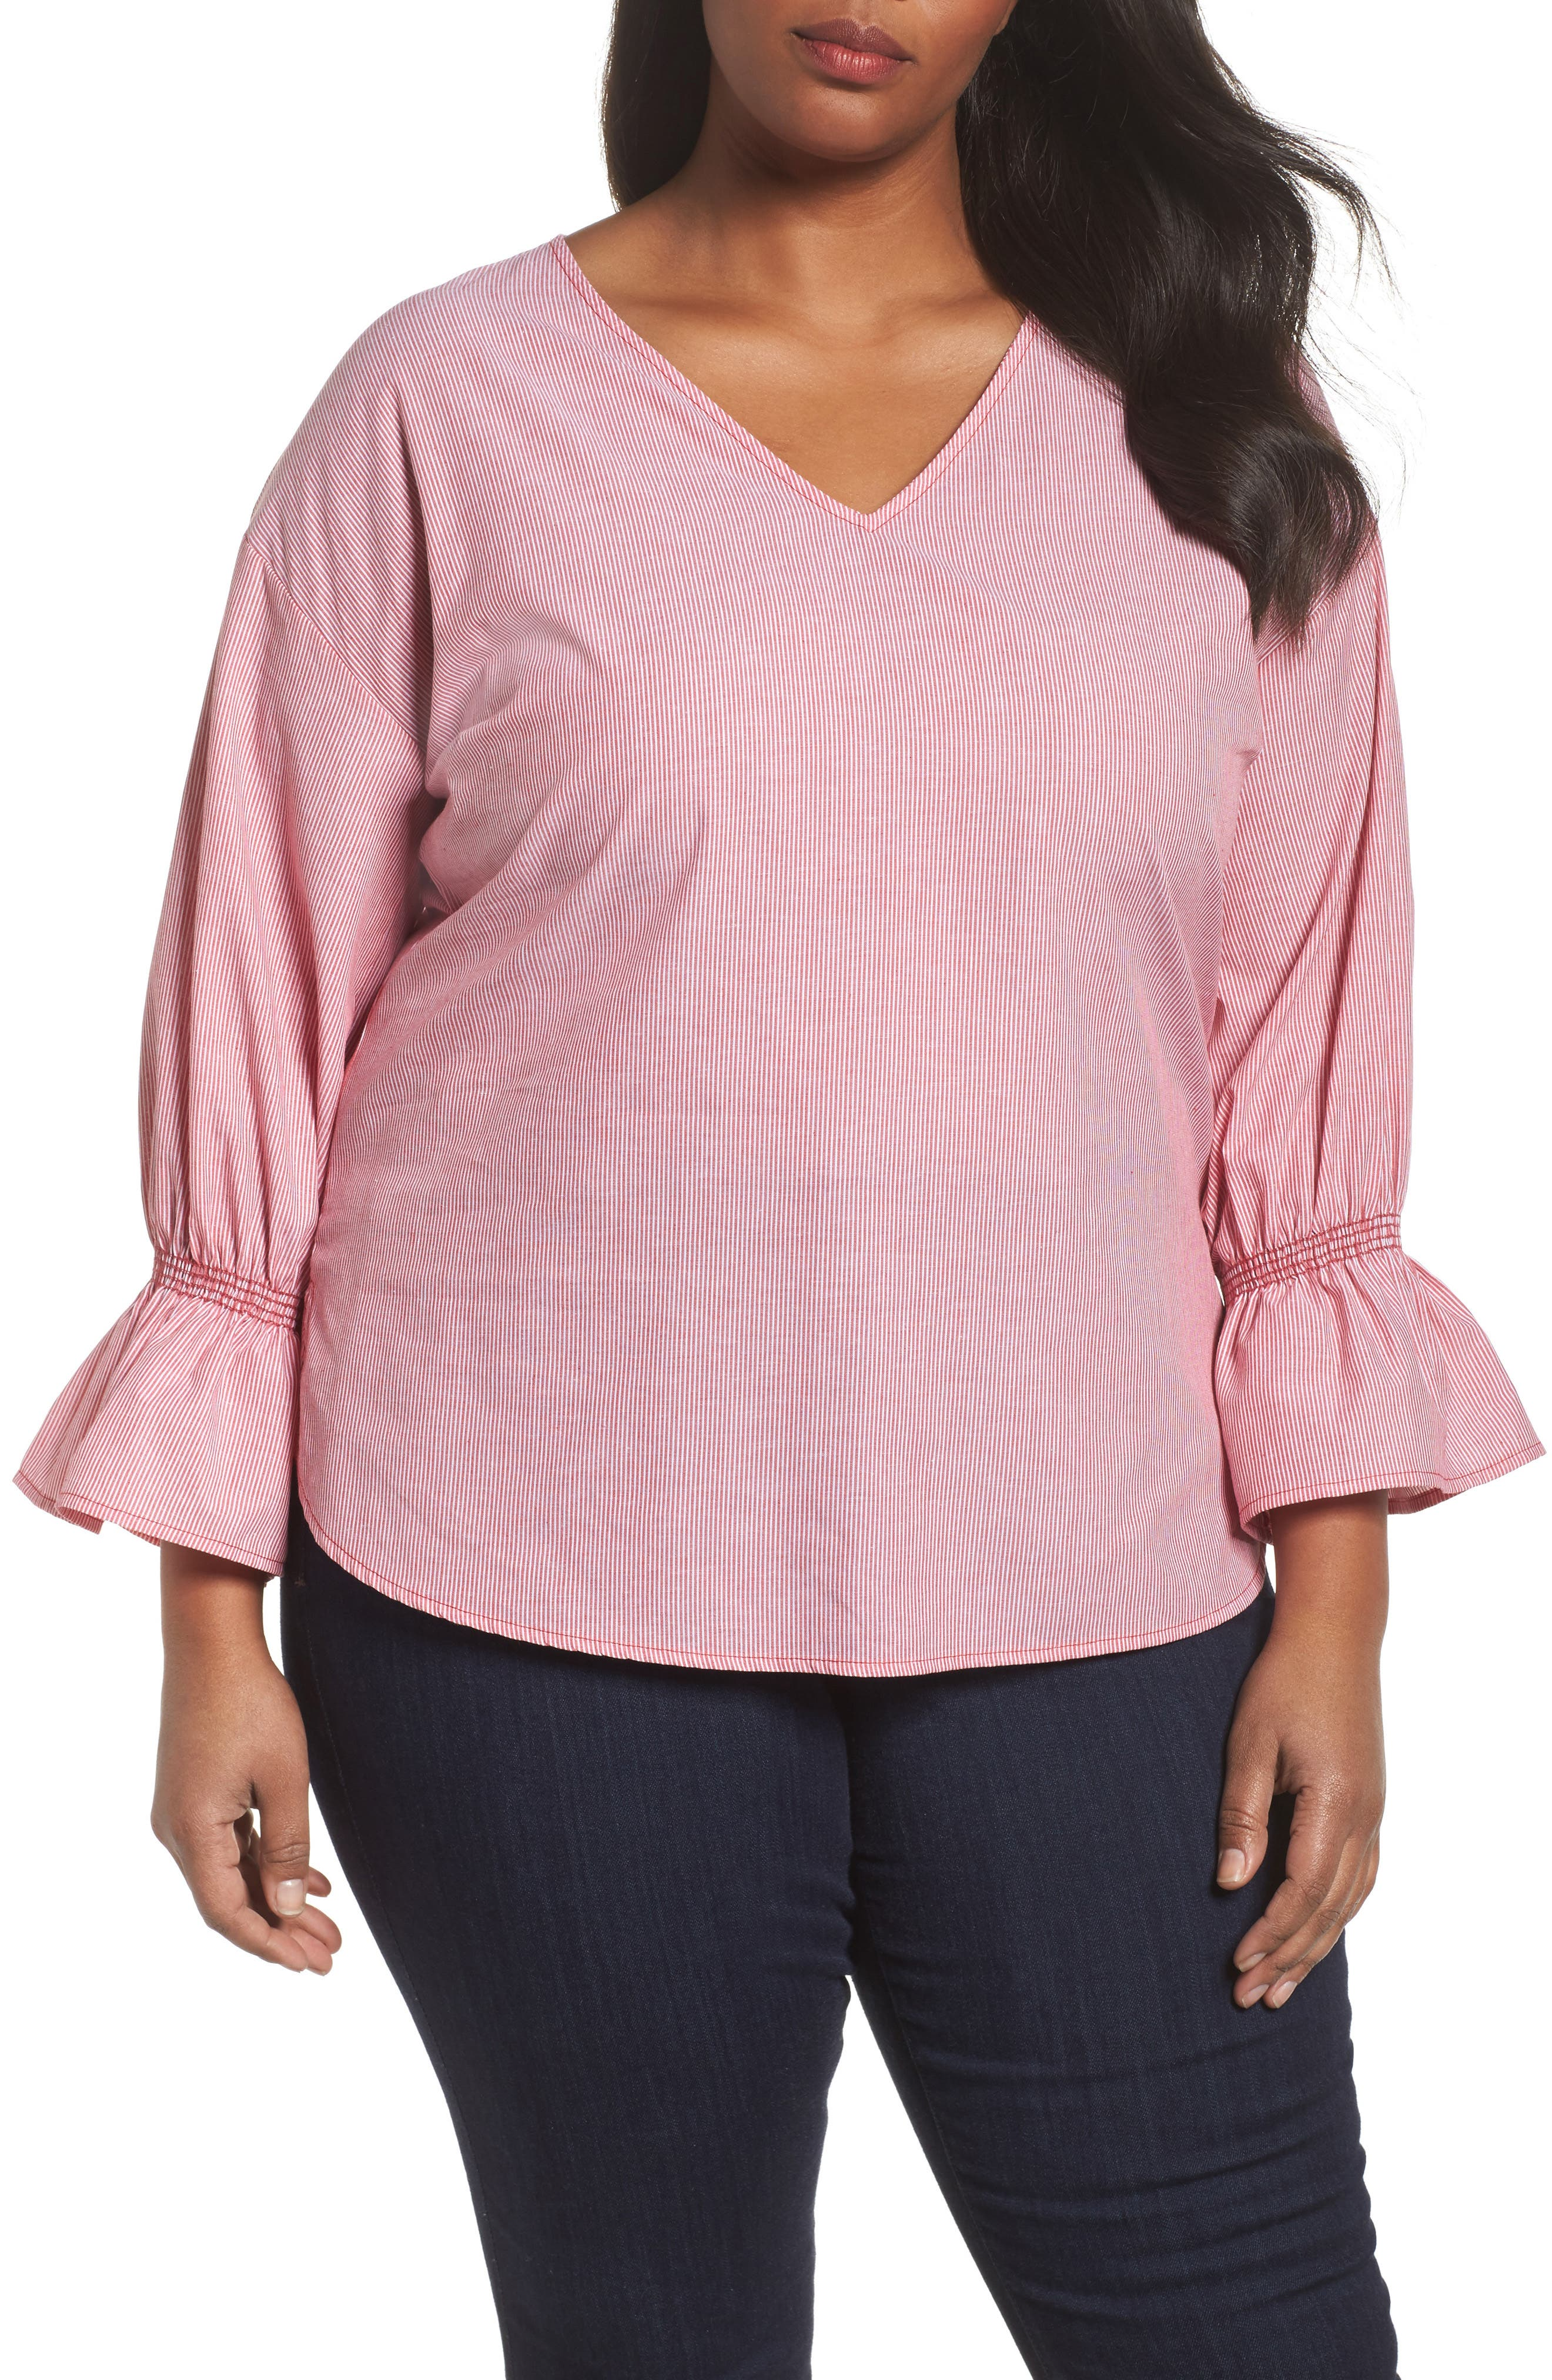 Sejour Pinstripe Bell Cuff Top (Plus Size)